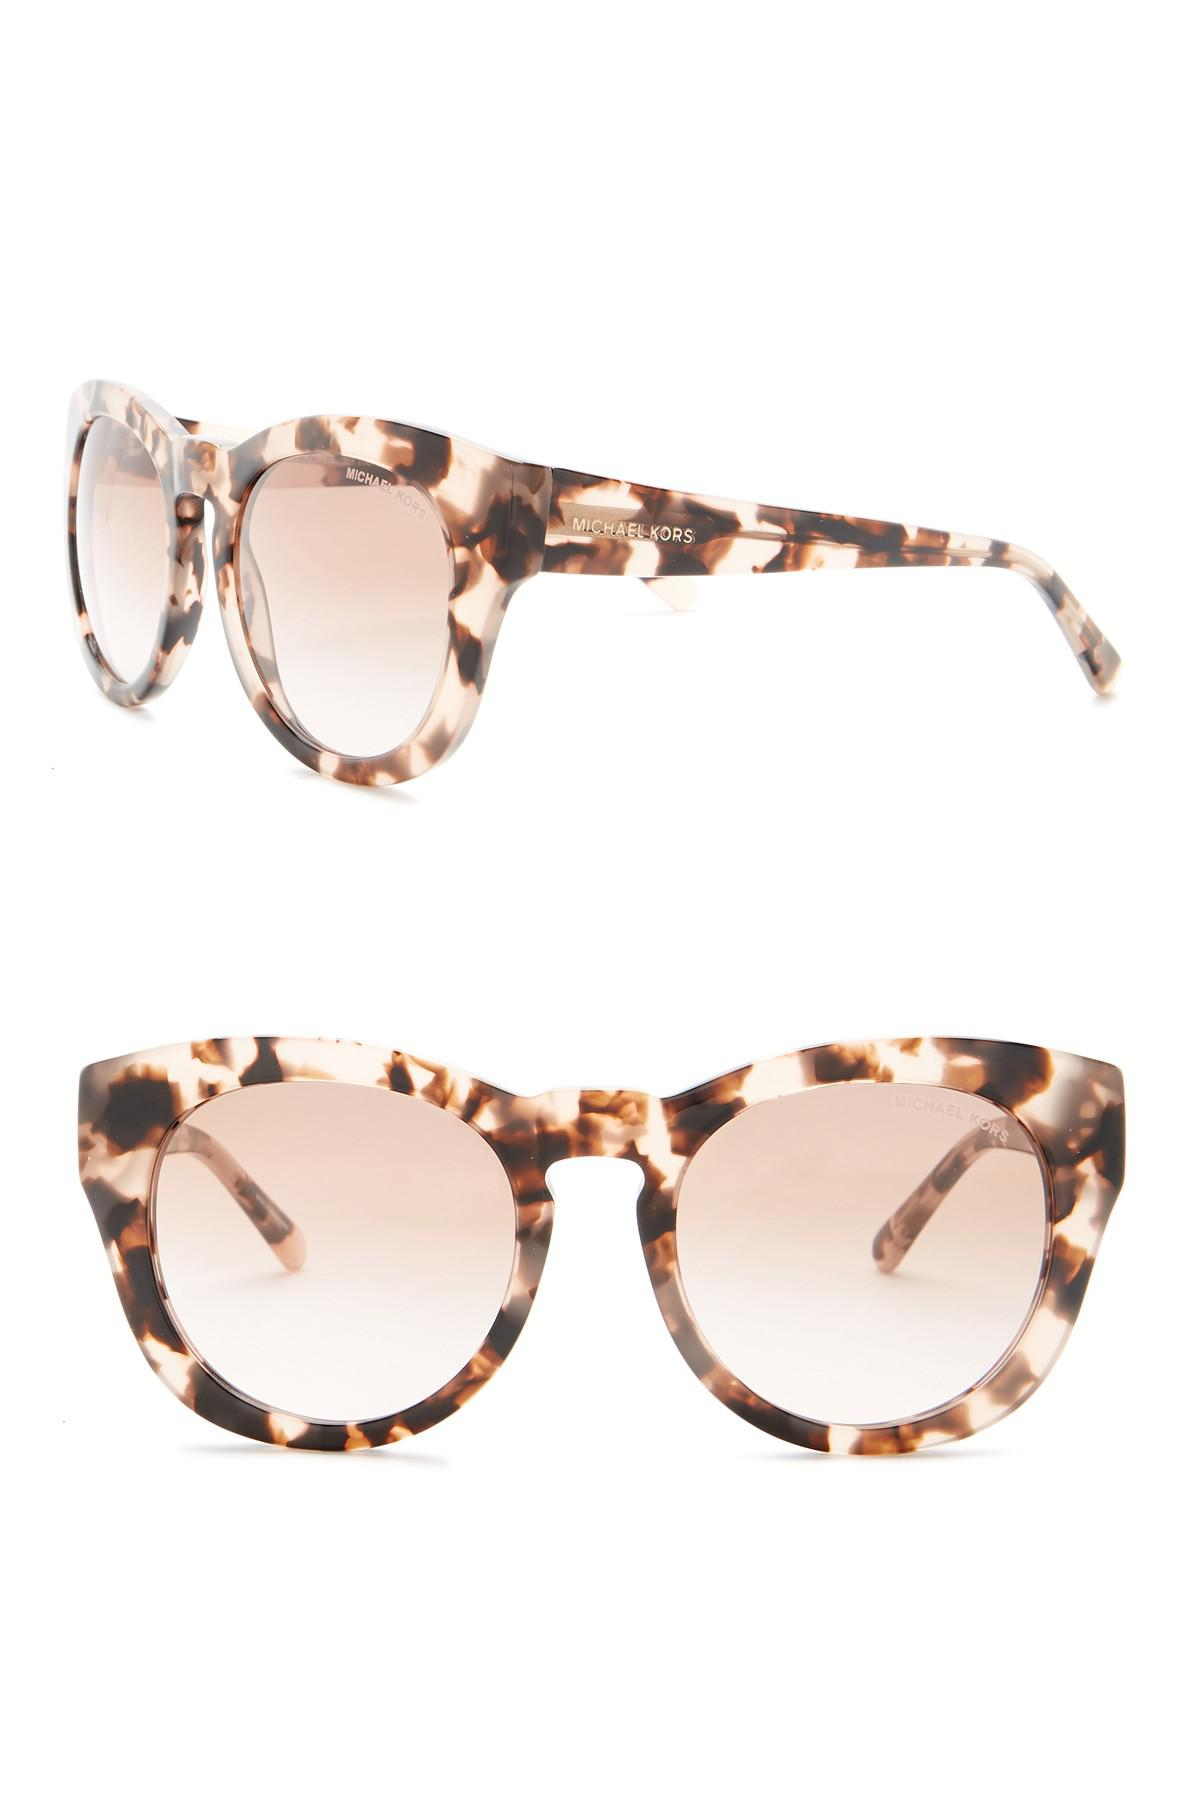 a1ab165f1814 Lyst - Michael Kors Women's Round Sunglasses in Pink